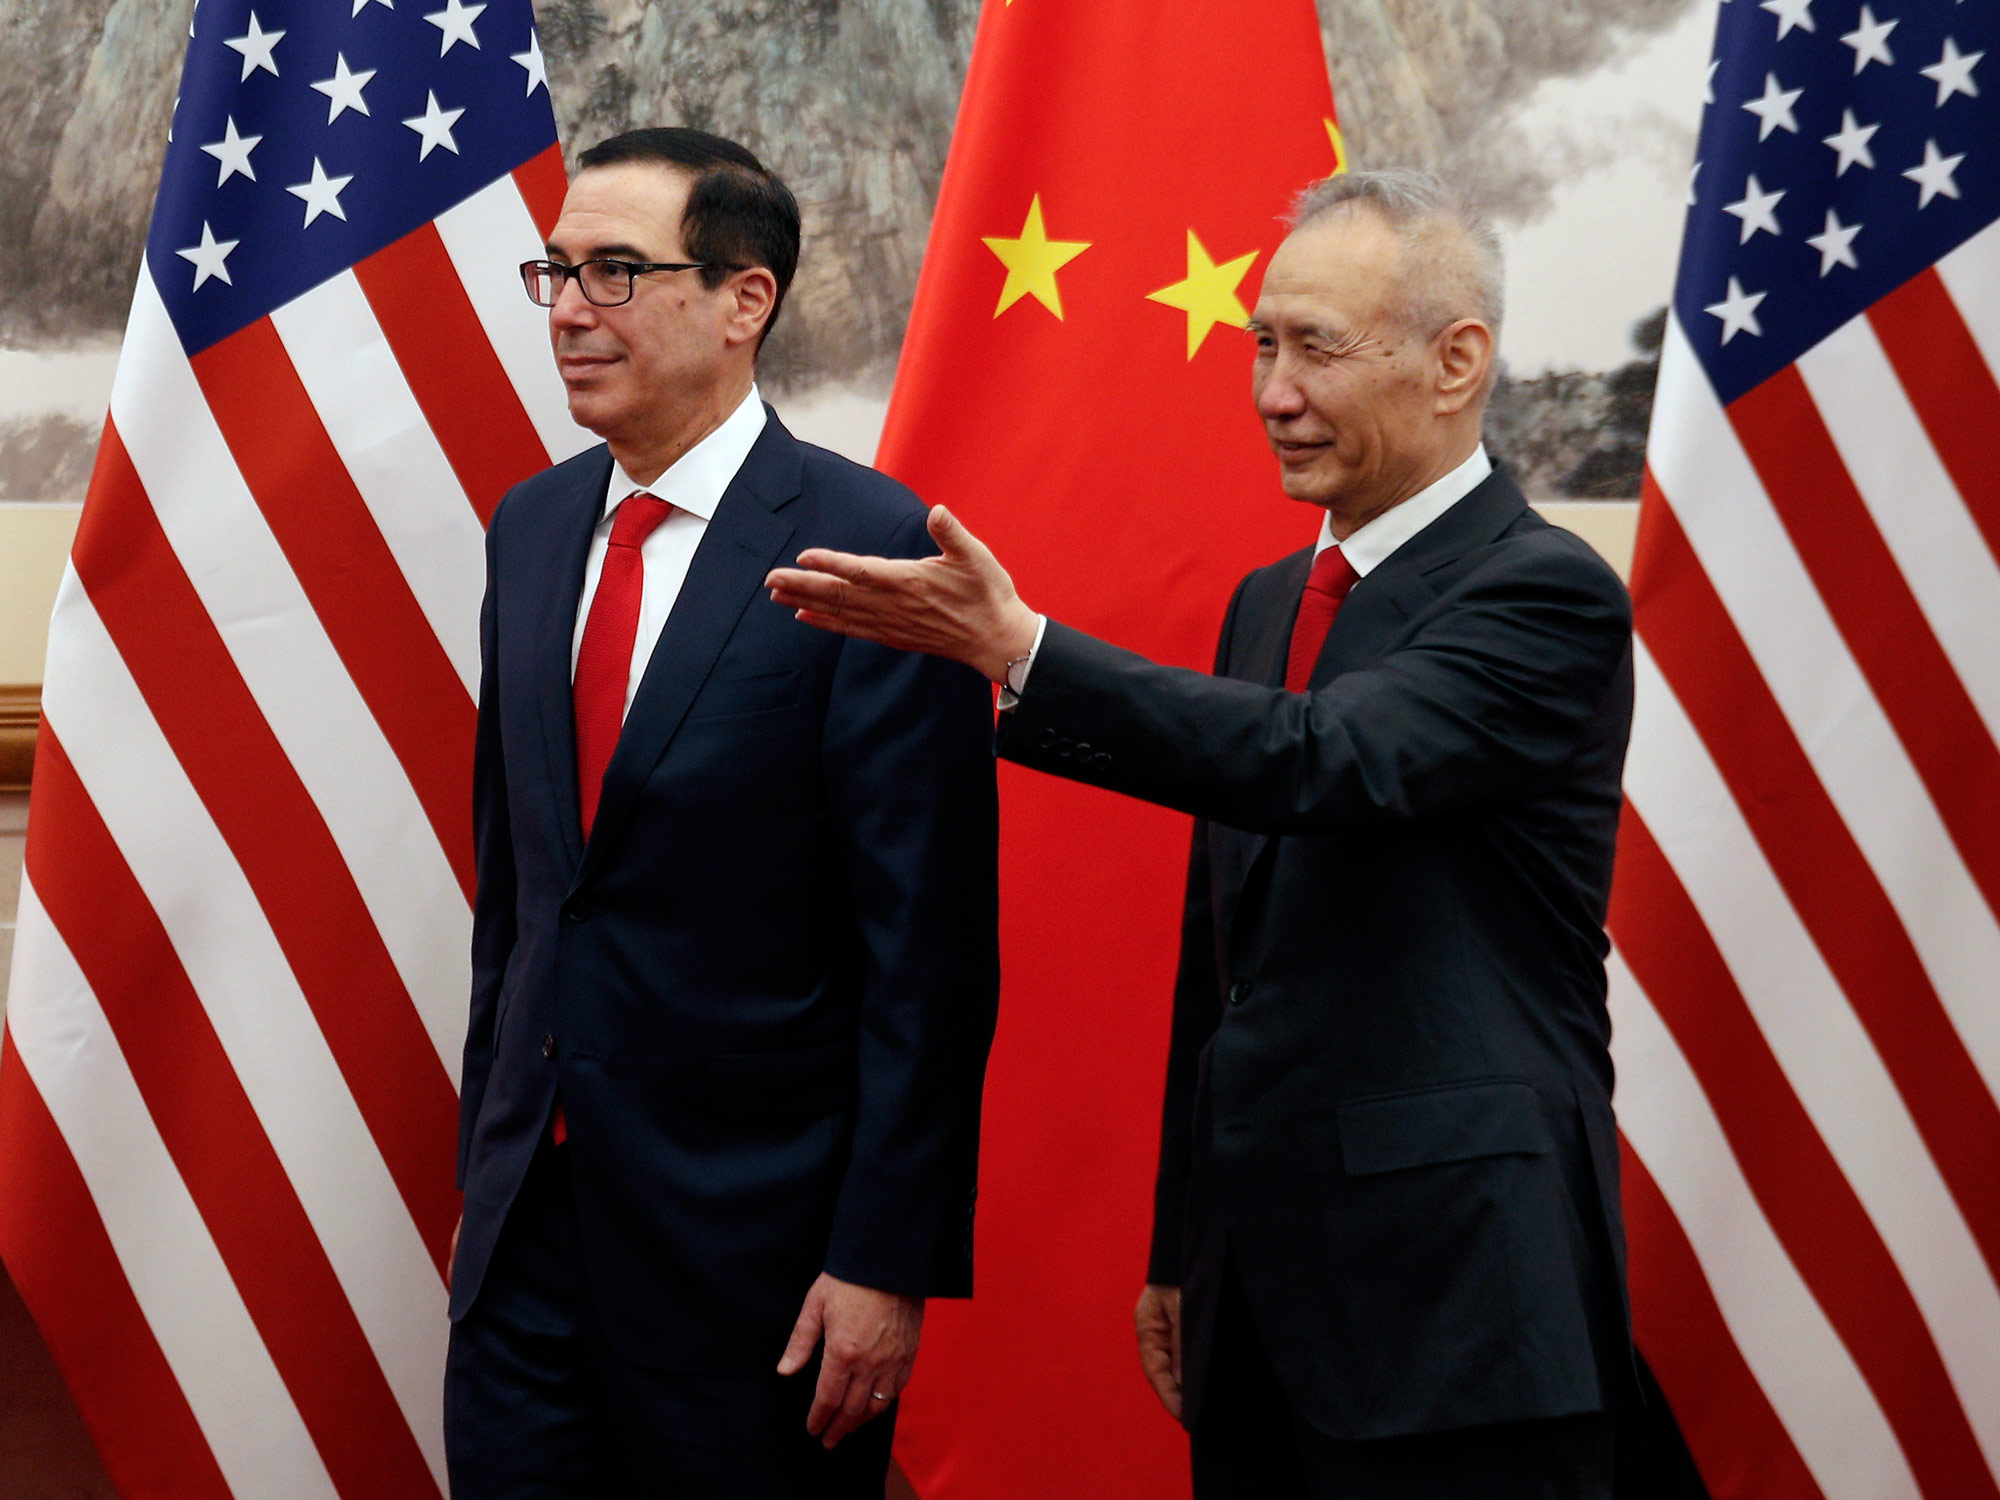 Chinese Vice Premier Liu He (R) shows the way to US Treasury Secretary Steven Mnuchin as they proceed for their meeting at the Diaoyutai State Guesthouse in Beijing on May 1, 2019.